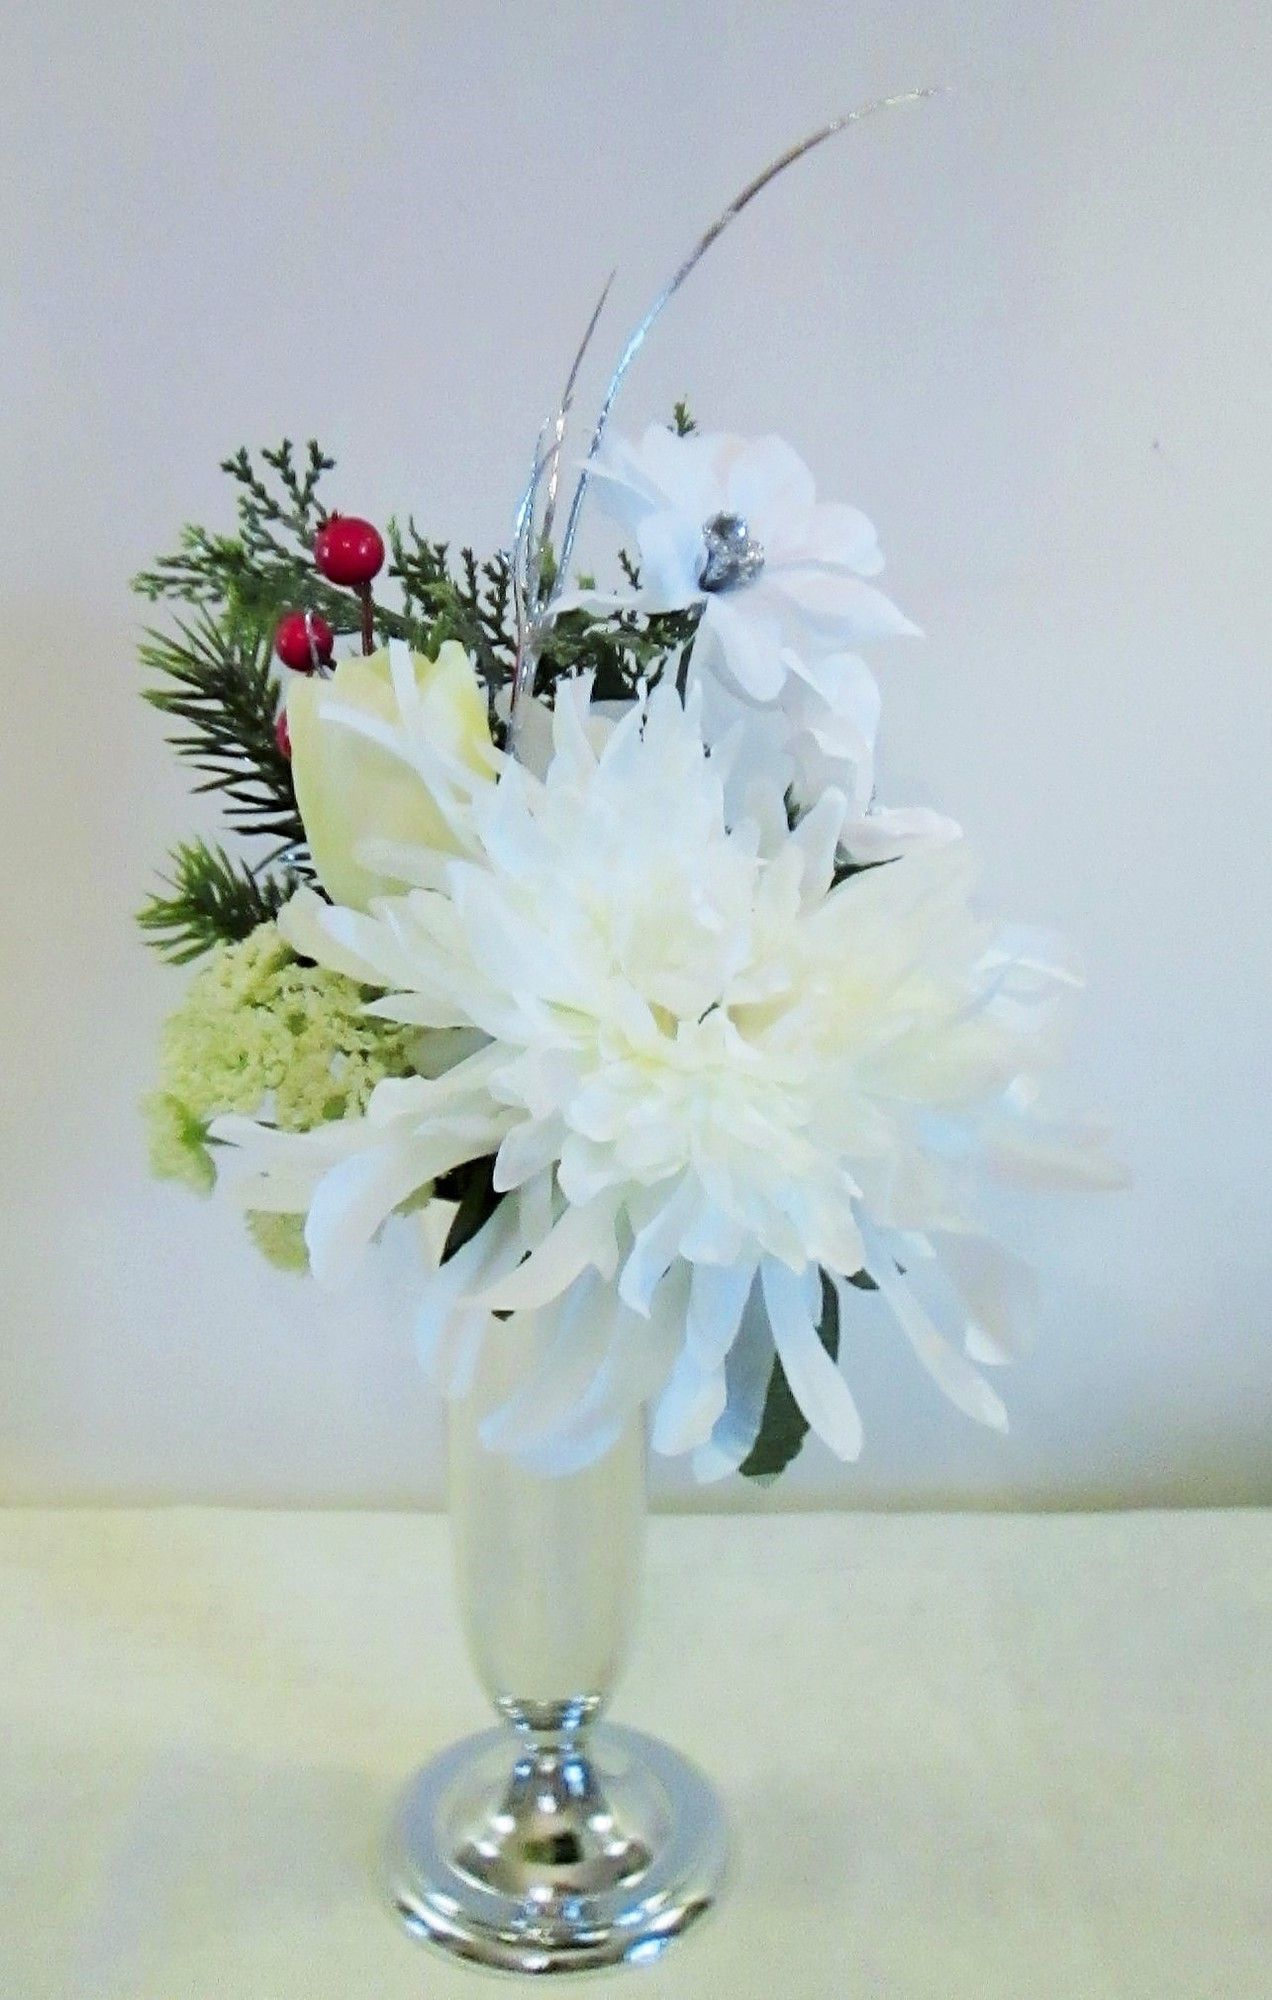 and vase for vases pin flower cemetery decorations arrangement flowers pinterest you may arrangements grave